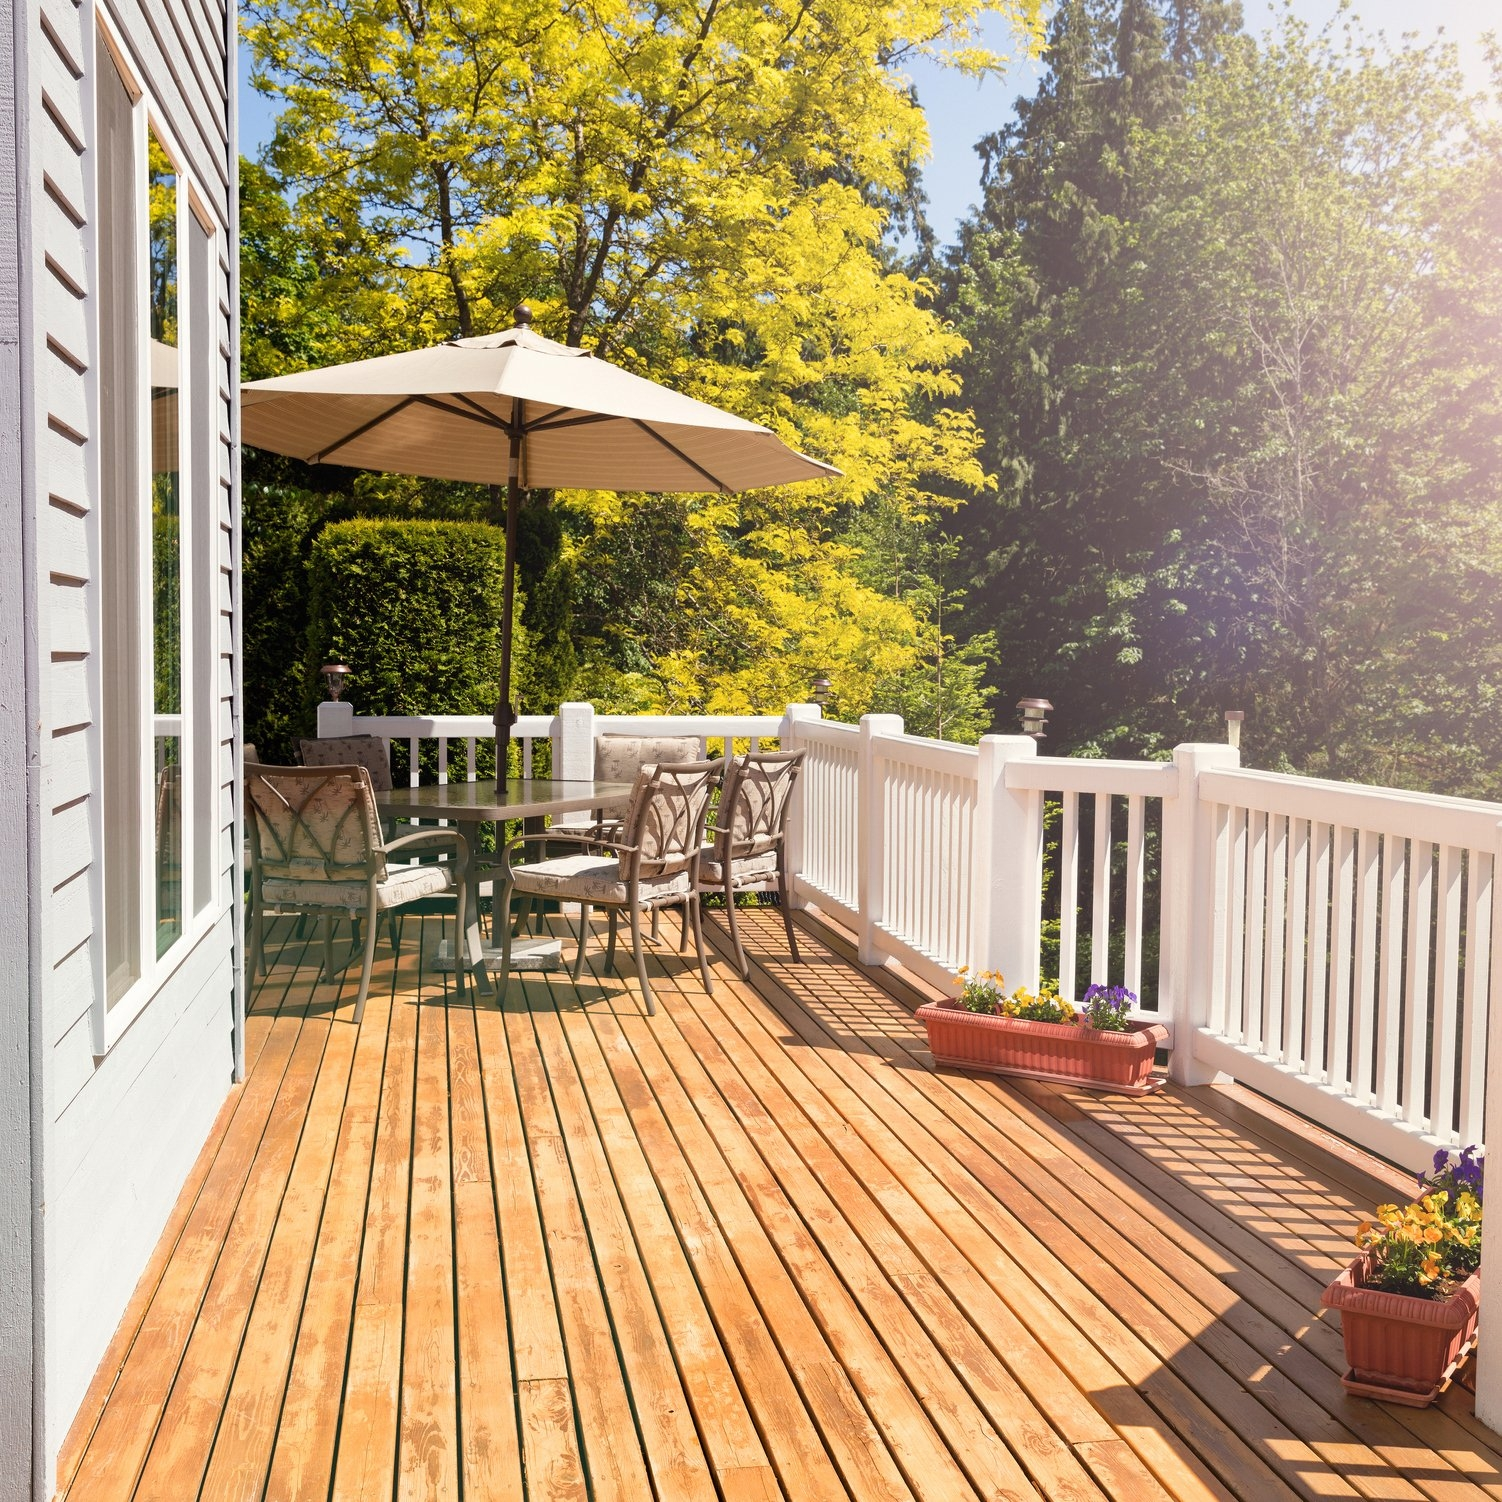 Porch Deck And Stair Railing Greenwood Sc Exterior Supply   Outdoor Wood Stair Railing   Child   Stair Inside   Staircase   Natural Wood   Build In